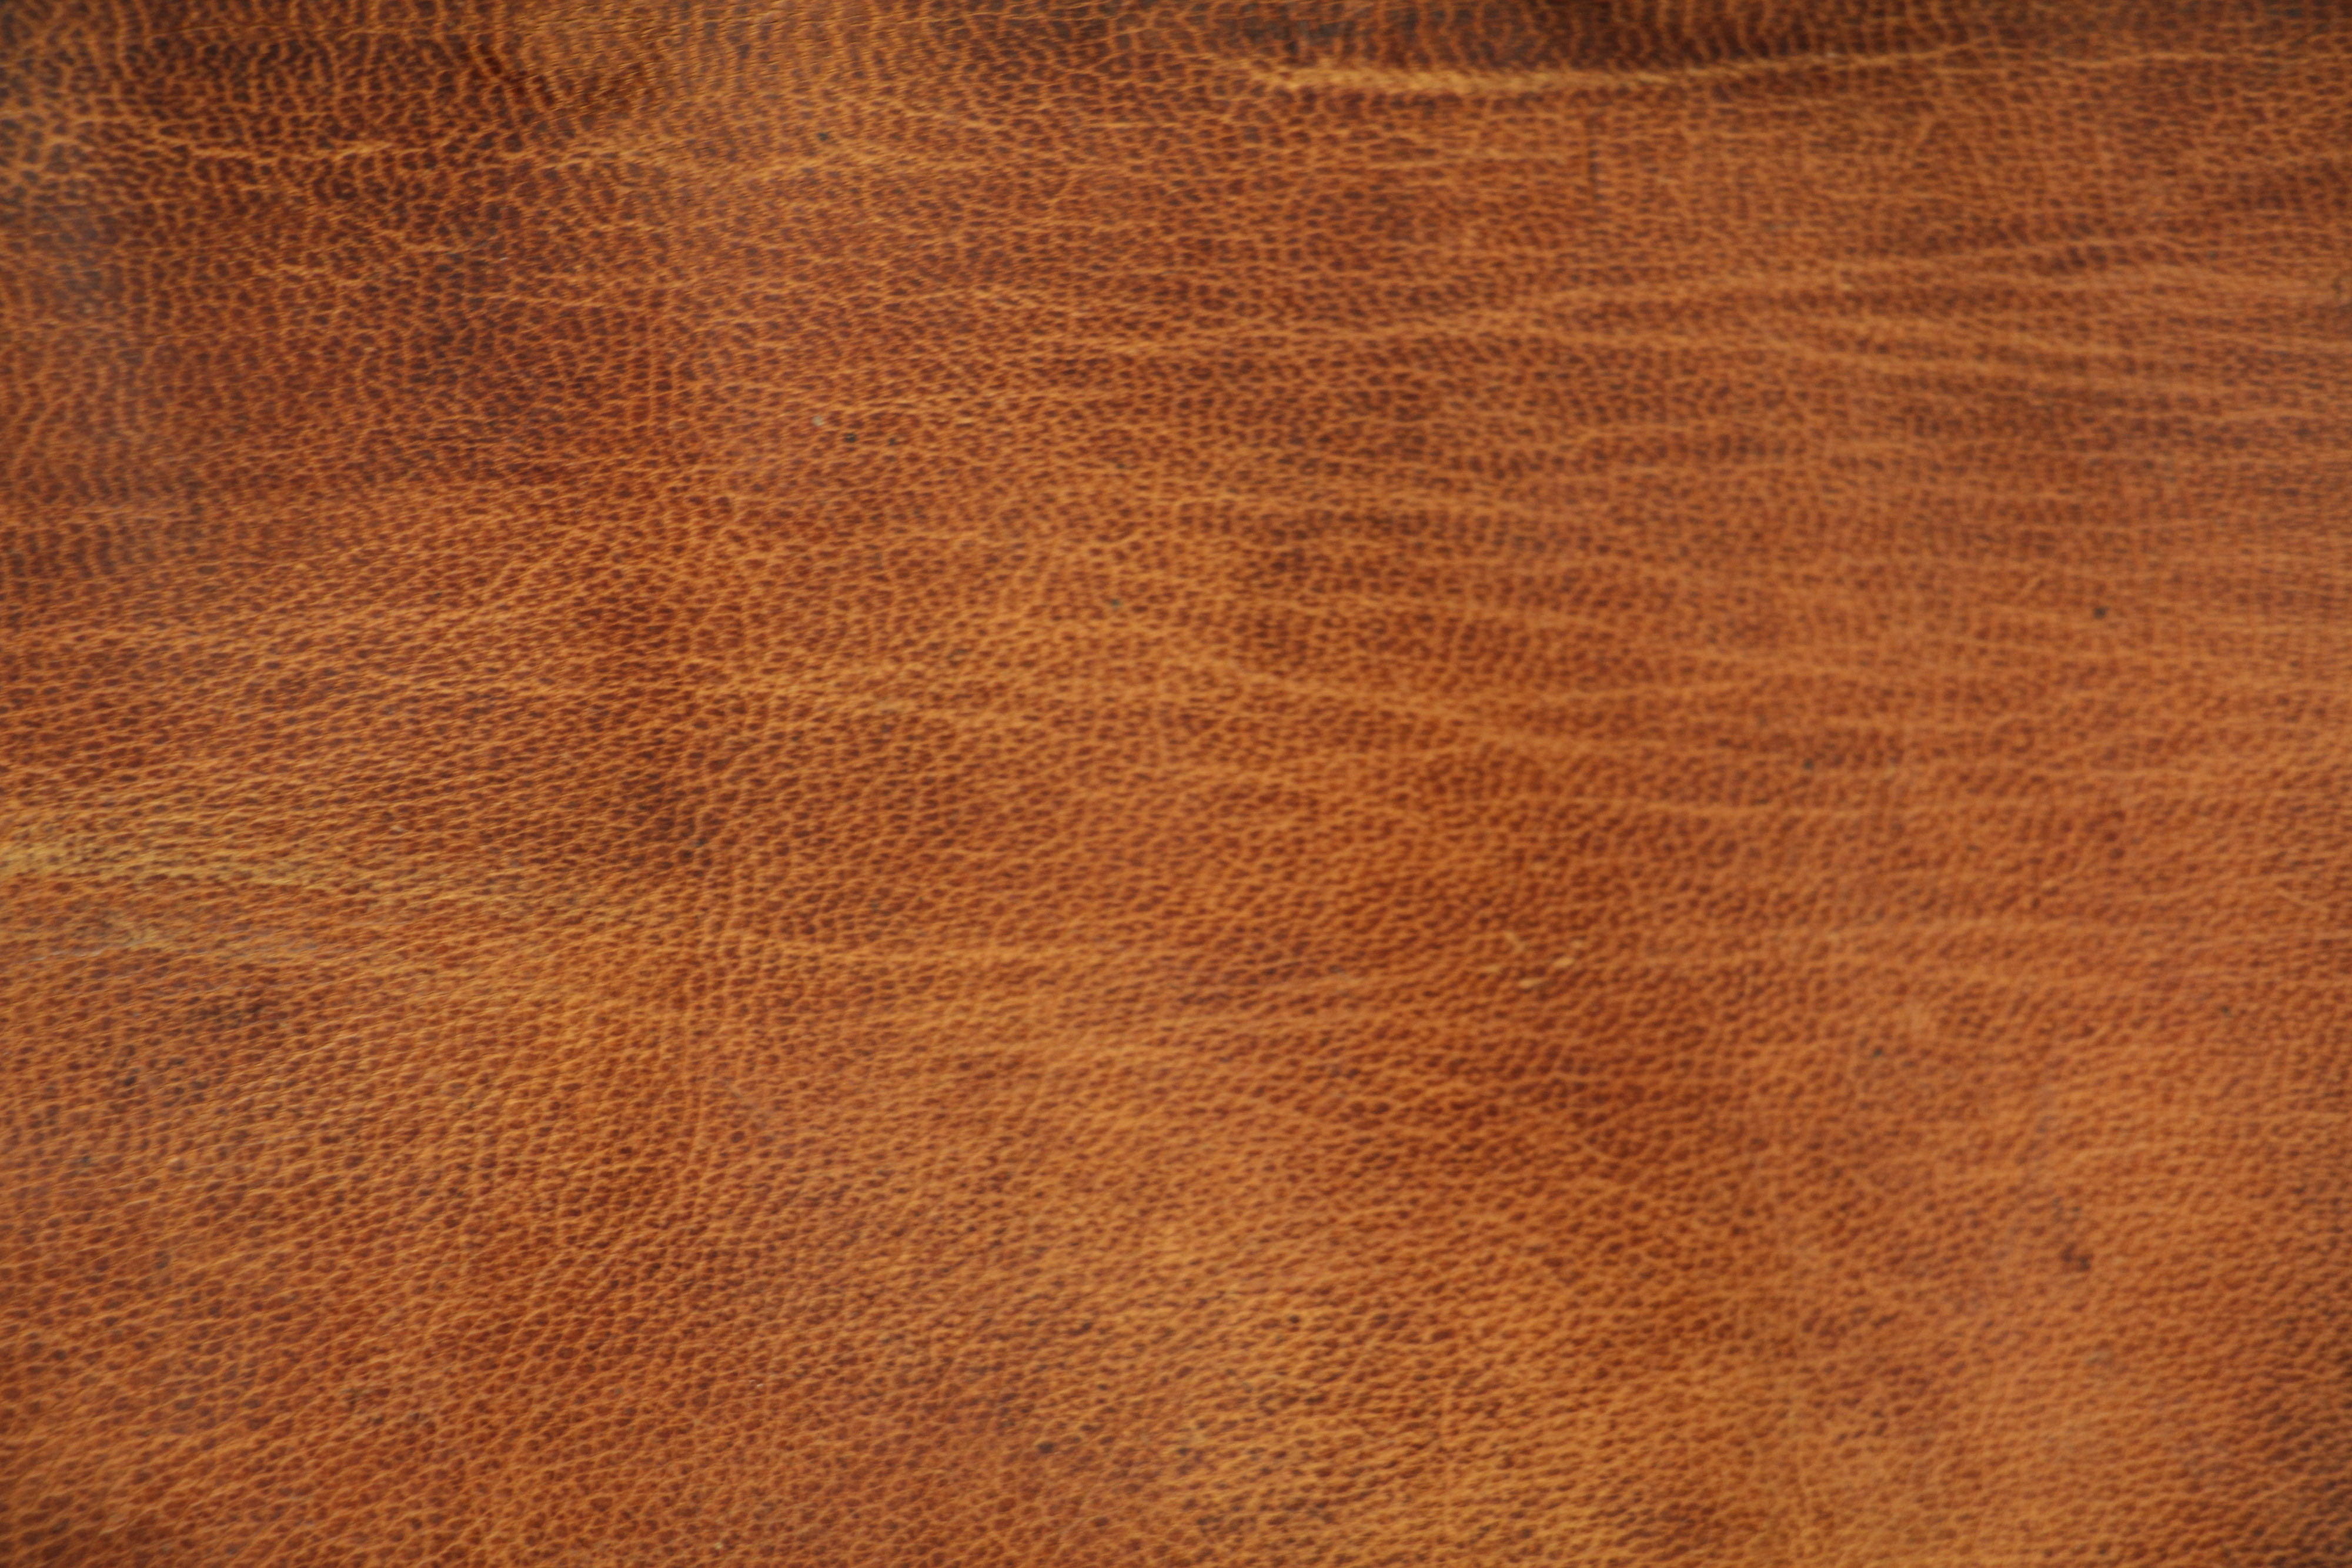 Leather Background Clip Art.